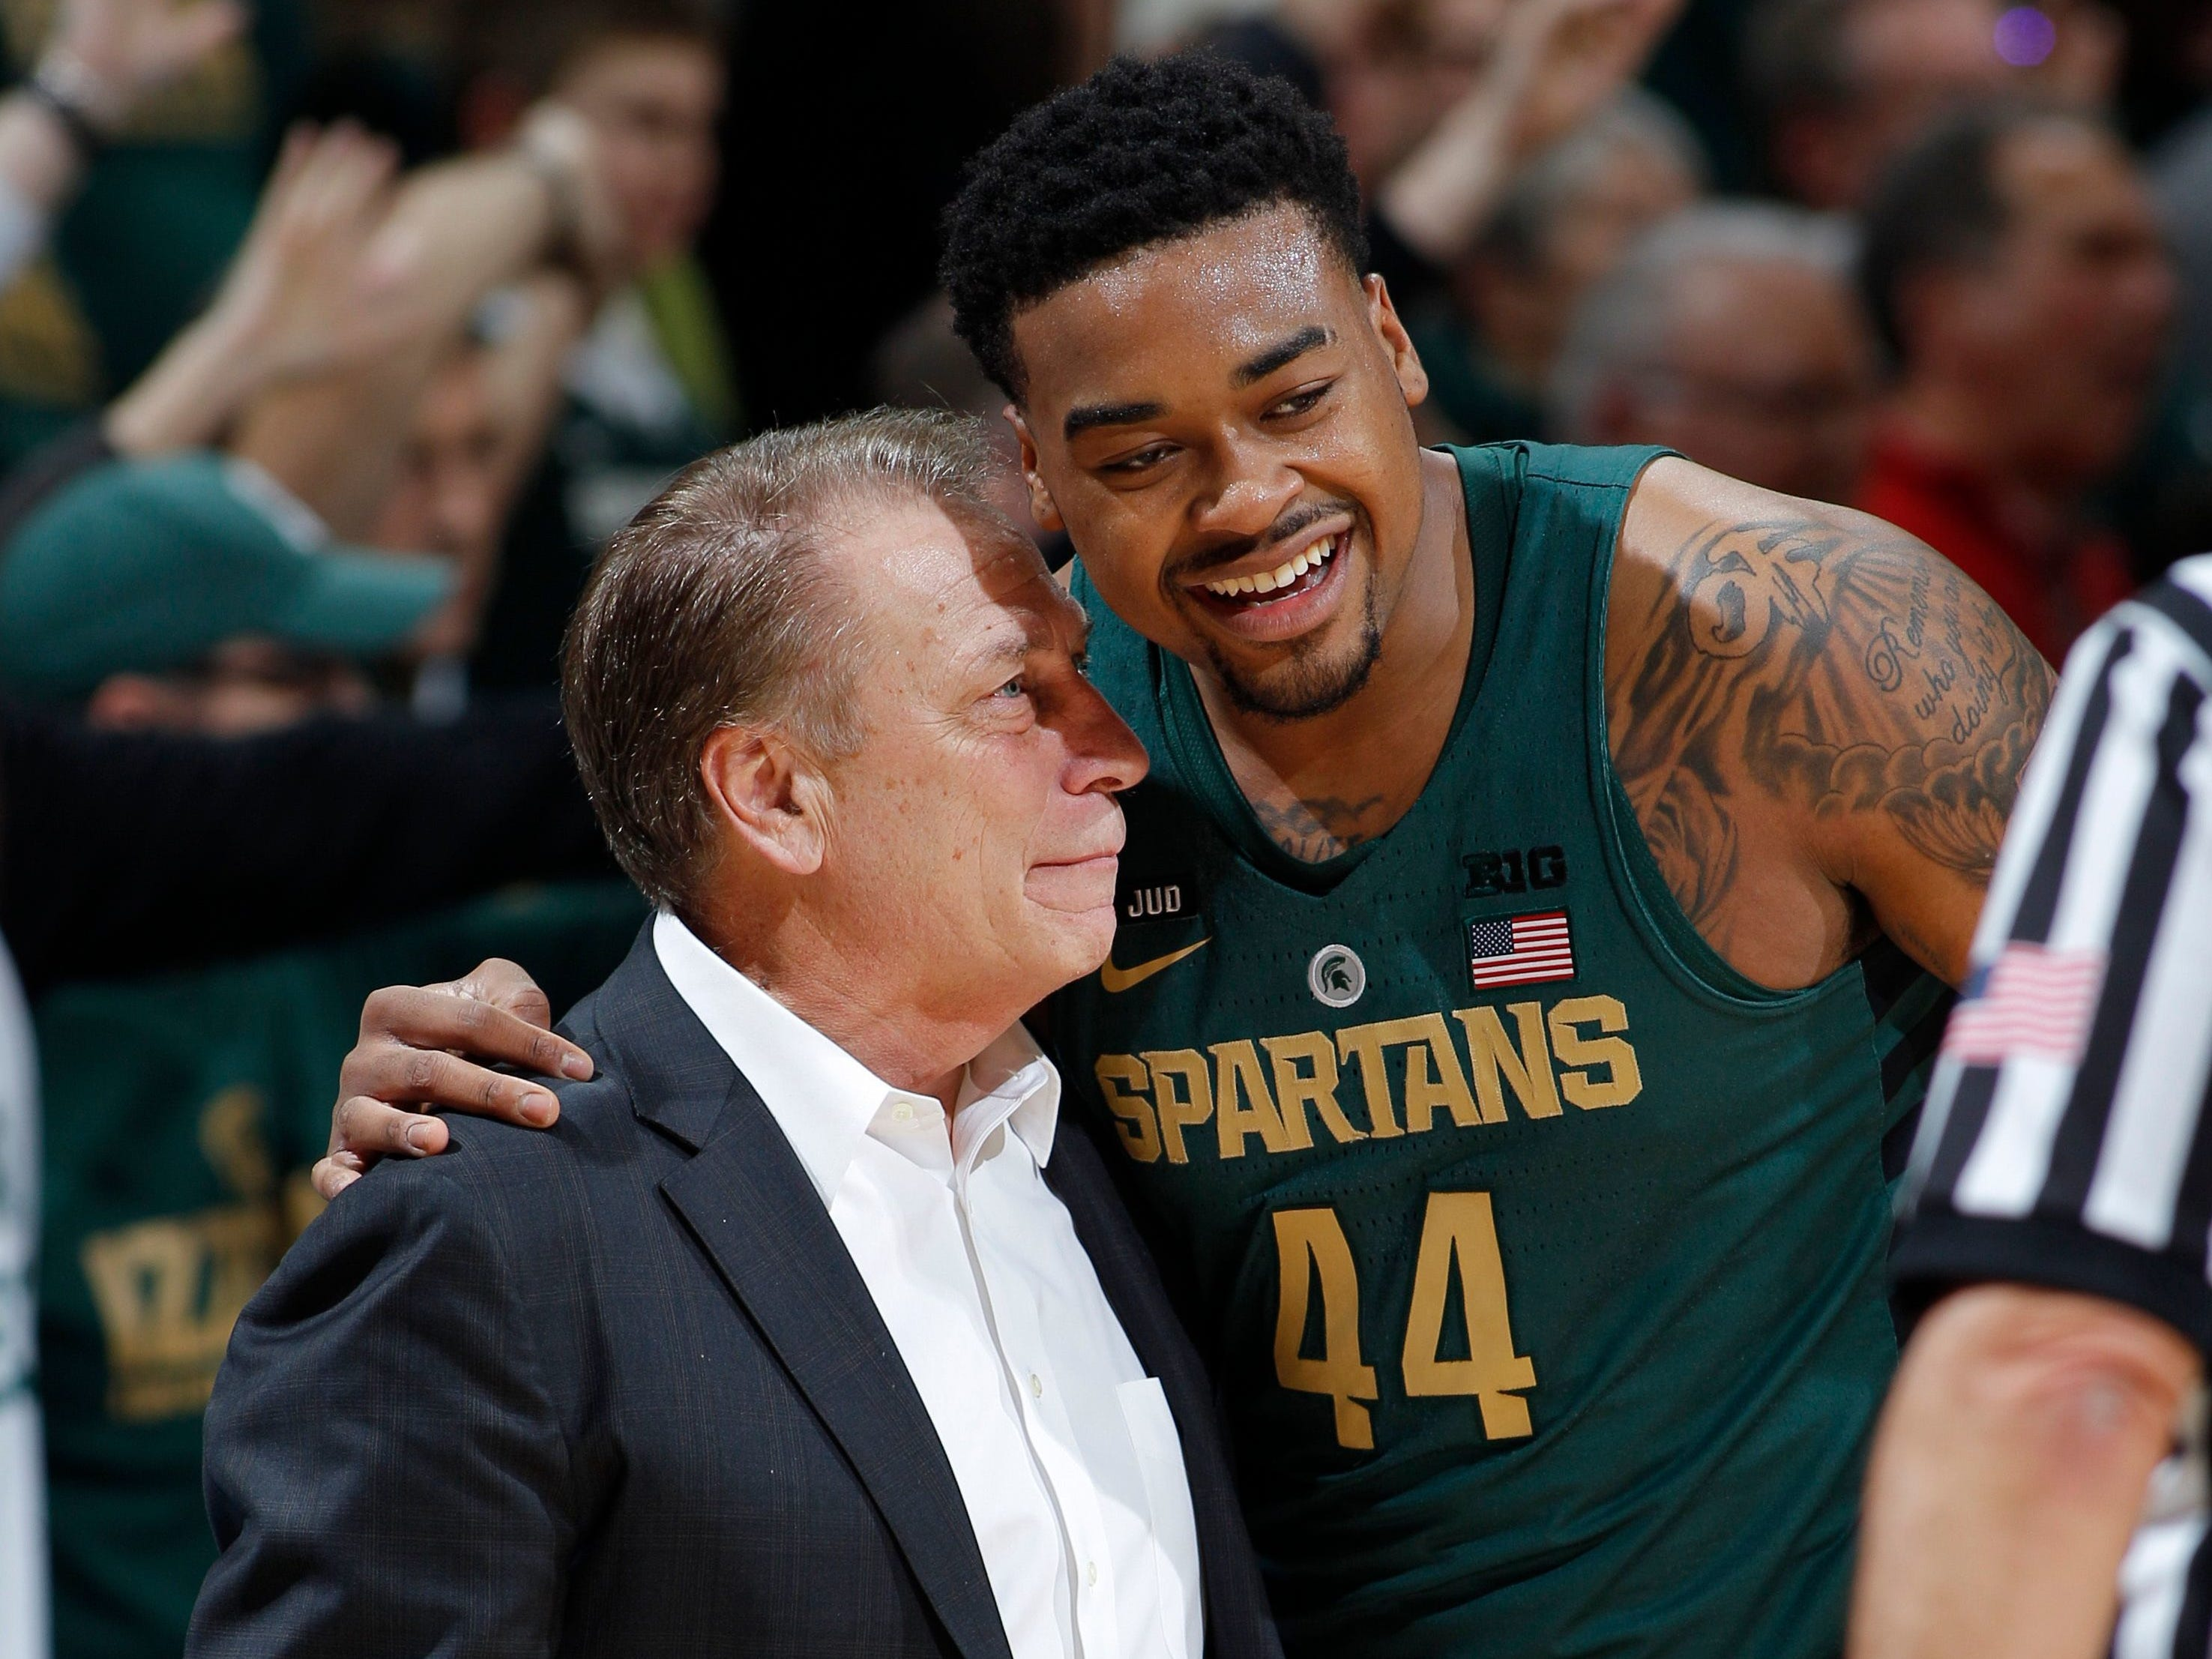 Michigan State coach Tom Izzo and forward Nick Ward talk during Thursday?s 91-61 win over Maryland at Breslin Center. MSU faces Ohio State today at 4:30 p.m.  Al Goldis/AP Michigan State coach Tom Izzo and forward Nick Ward talk during the second half of the 91-61 win over Maryland at Breslin Center on Jan. 4, 2018 in East Lansing.